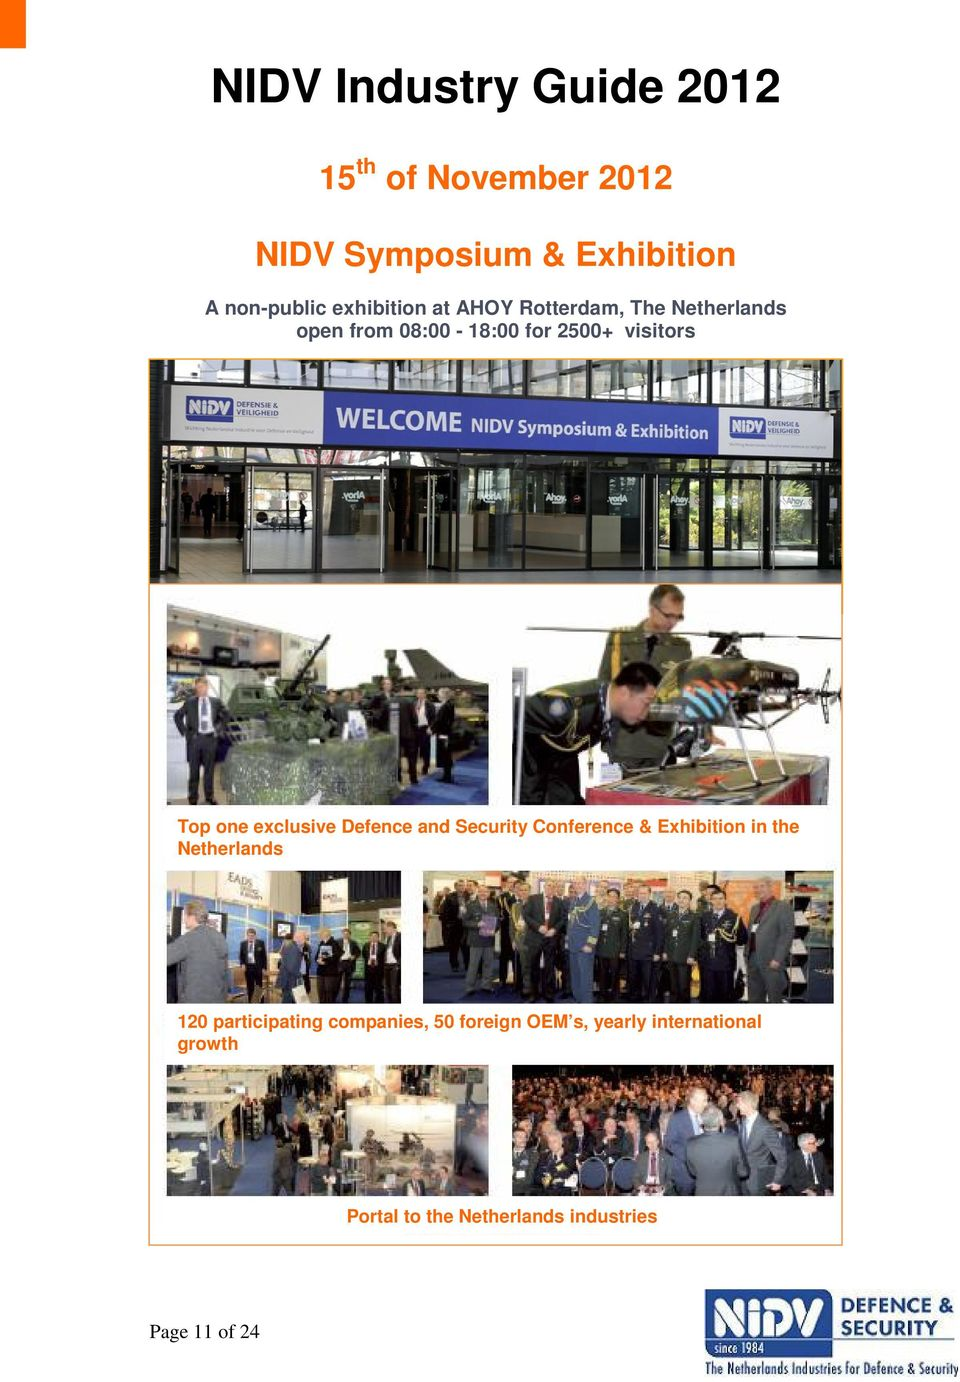 Defence and Security Conference & Exhibition in the Netherlands 120 participating